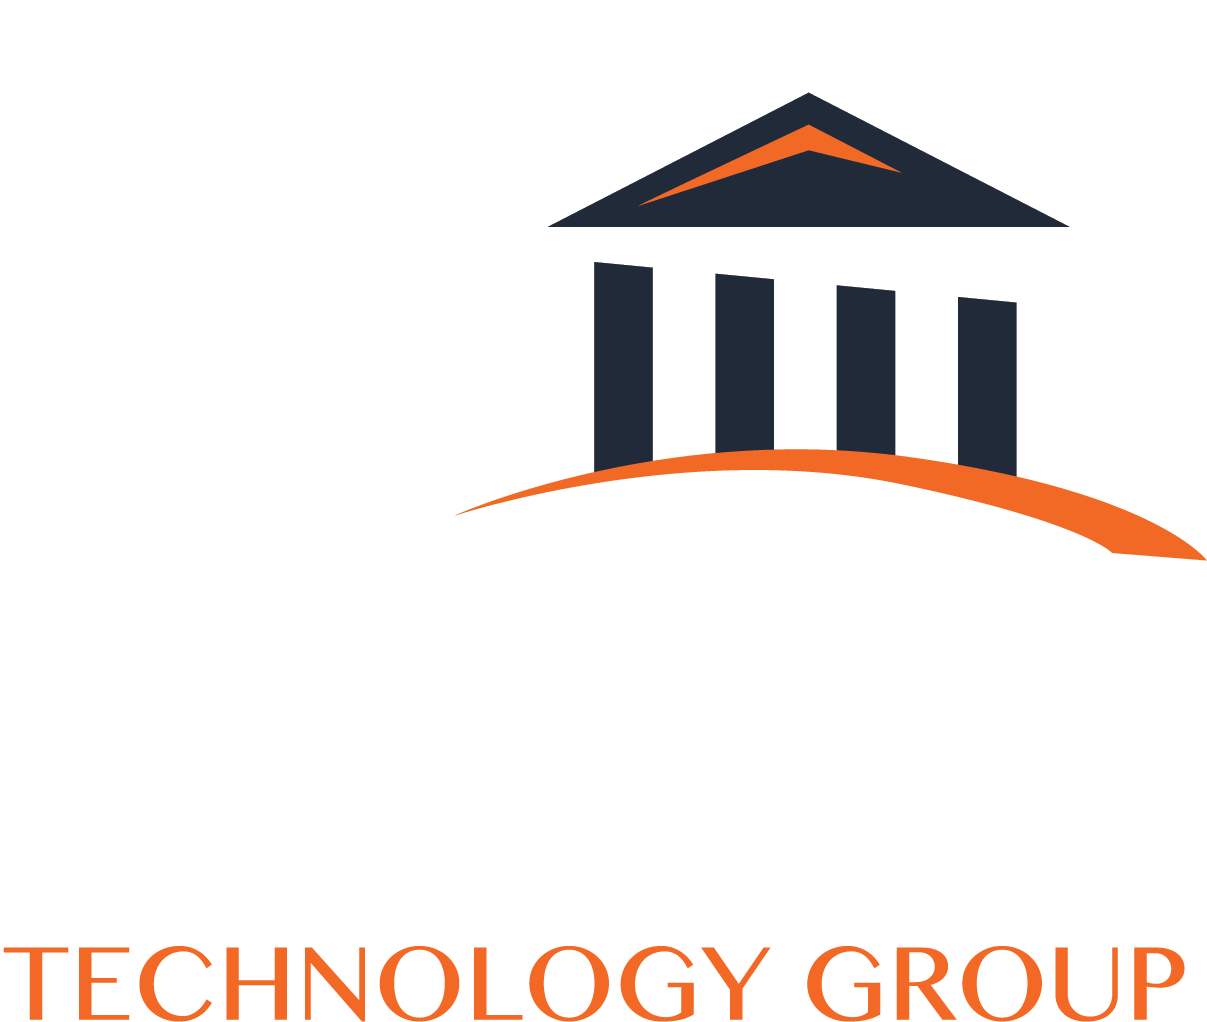 Acropolis Technology Group